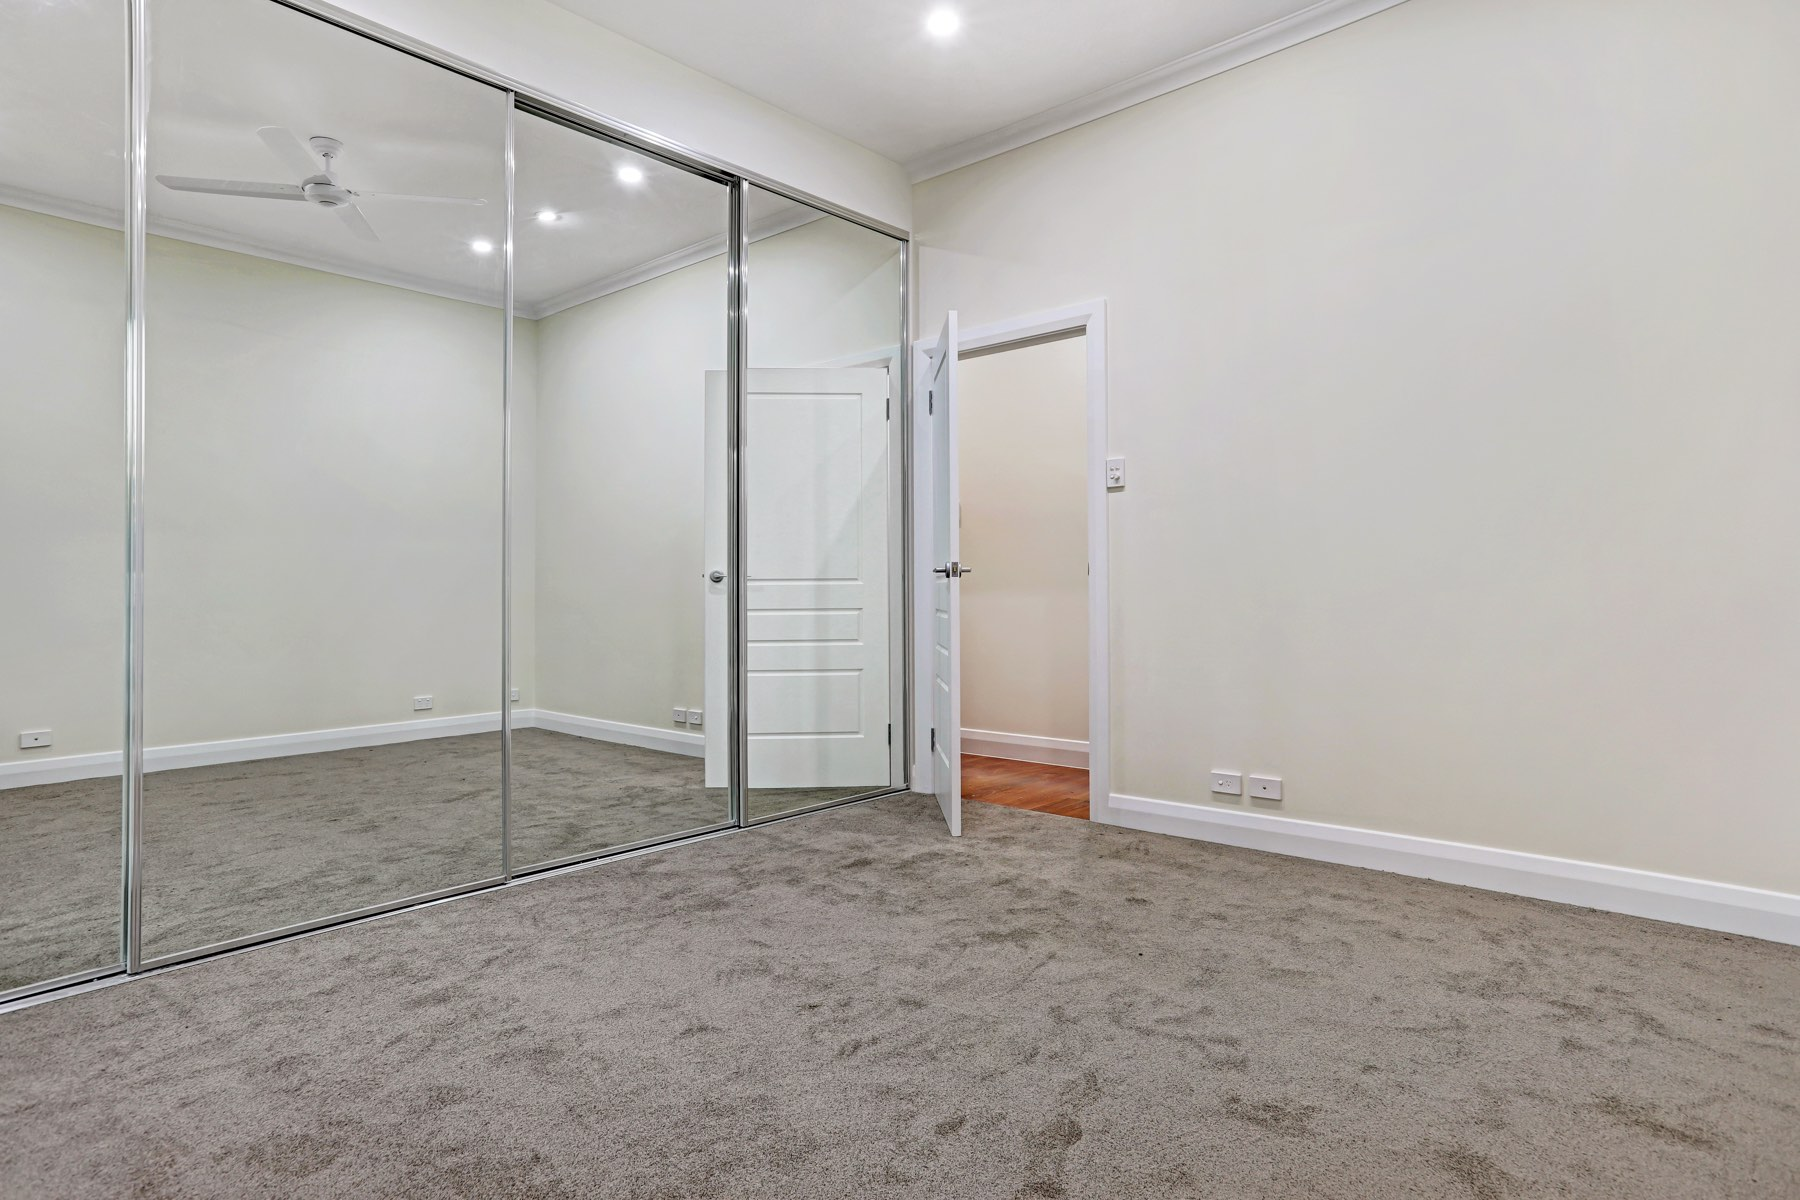 12 Lowan Ave (26 of 31)